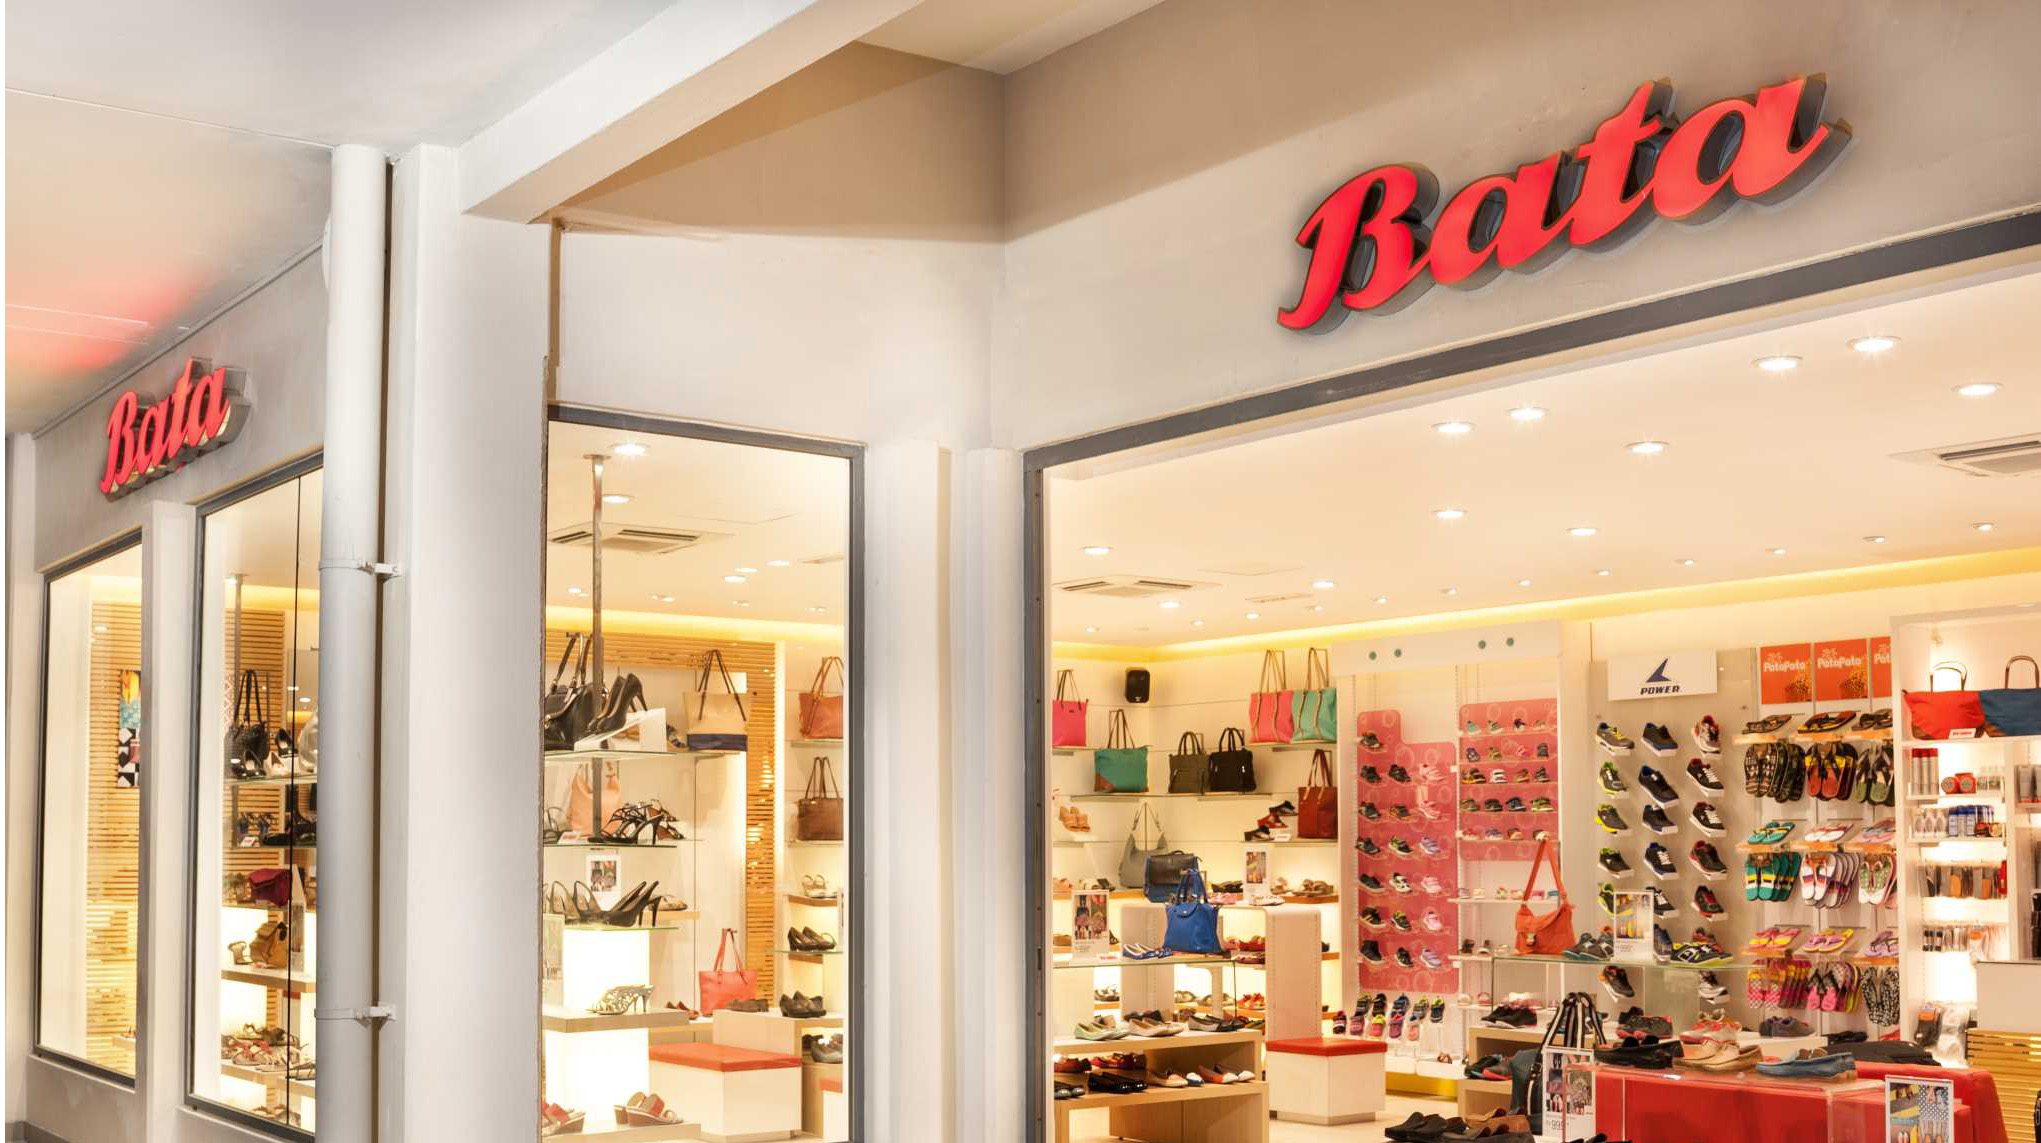 Bata plans to expand business through a franchise model